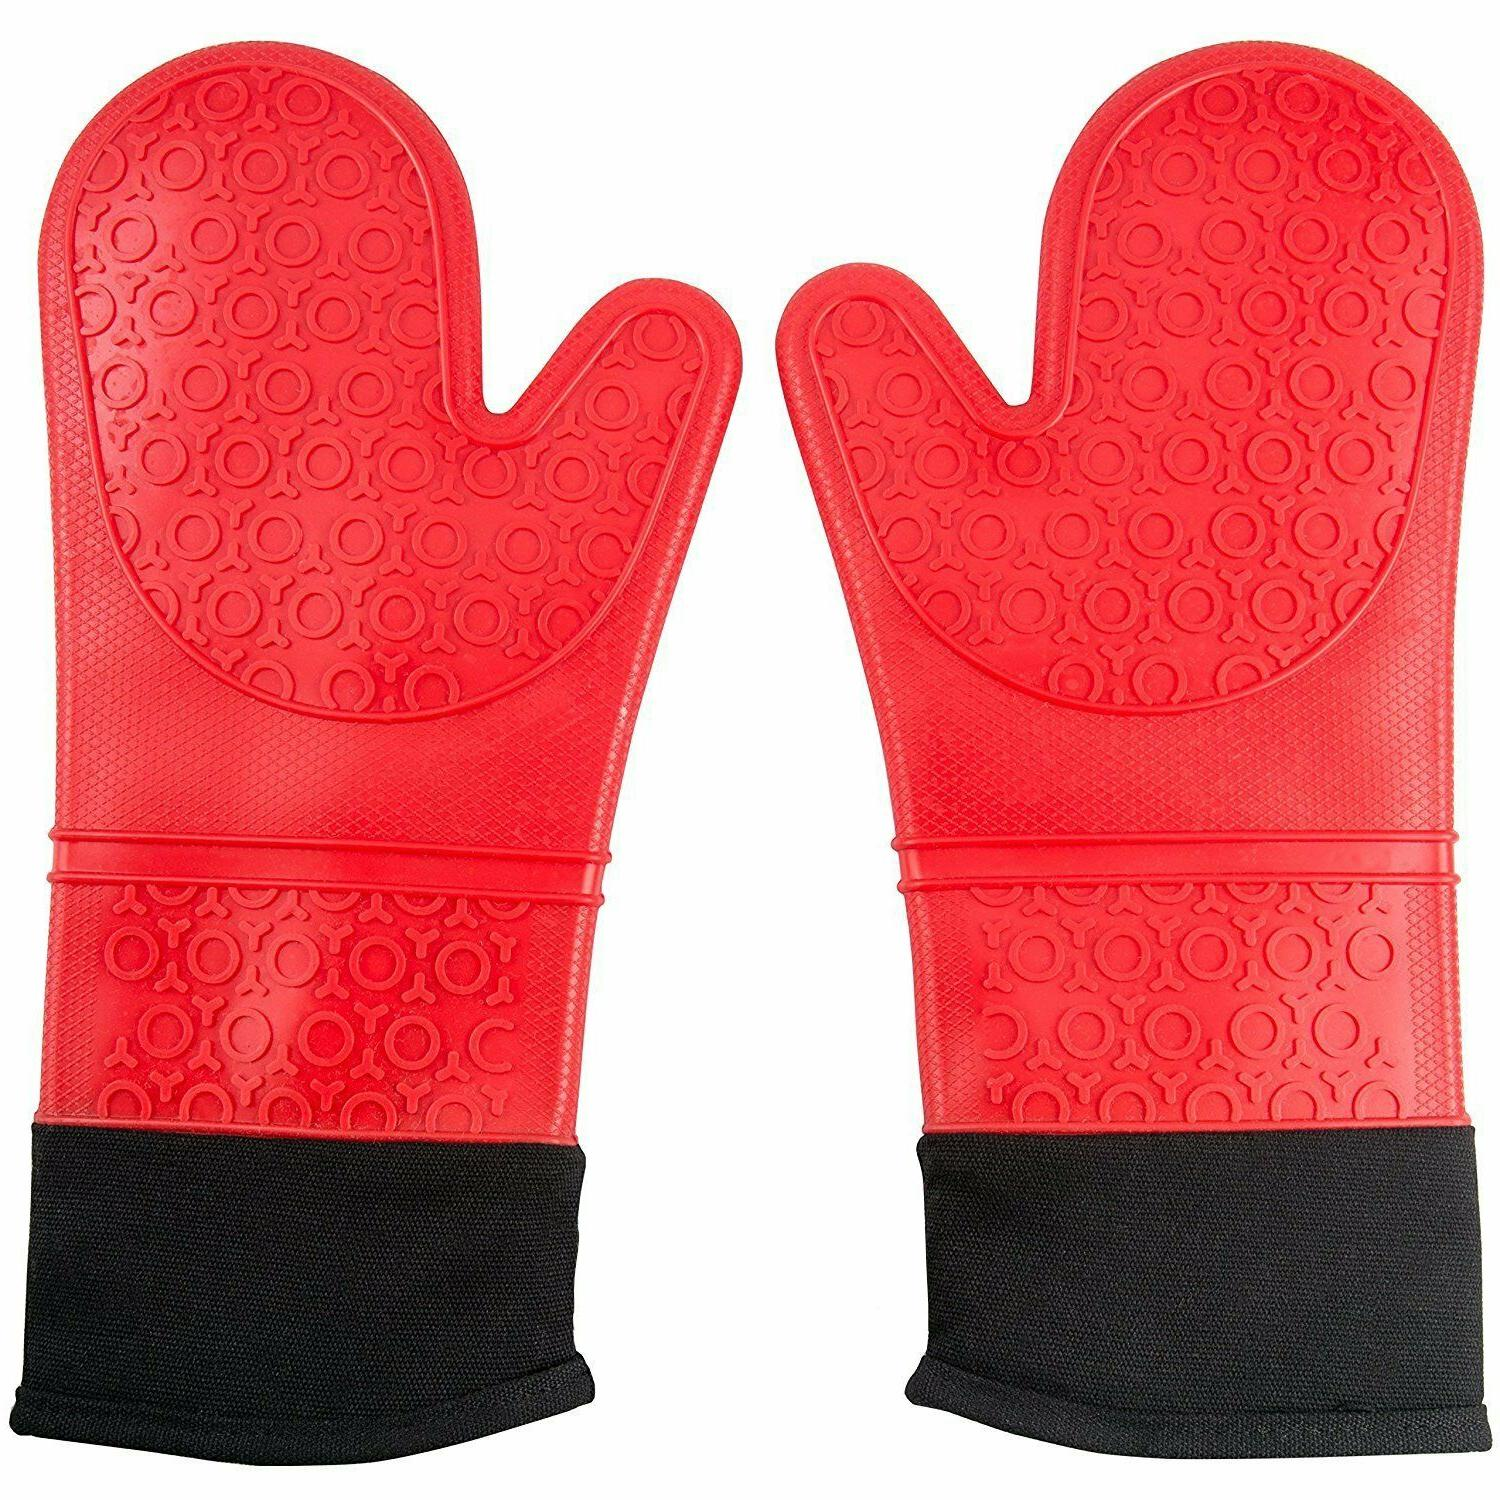 extra long professional silicone oven mitts 1